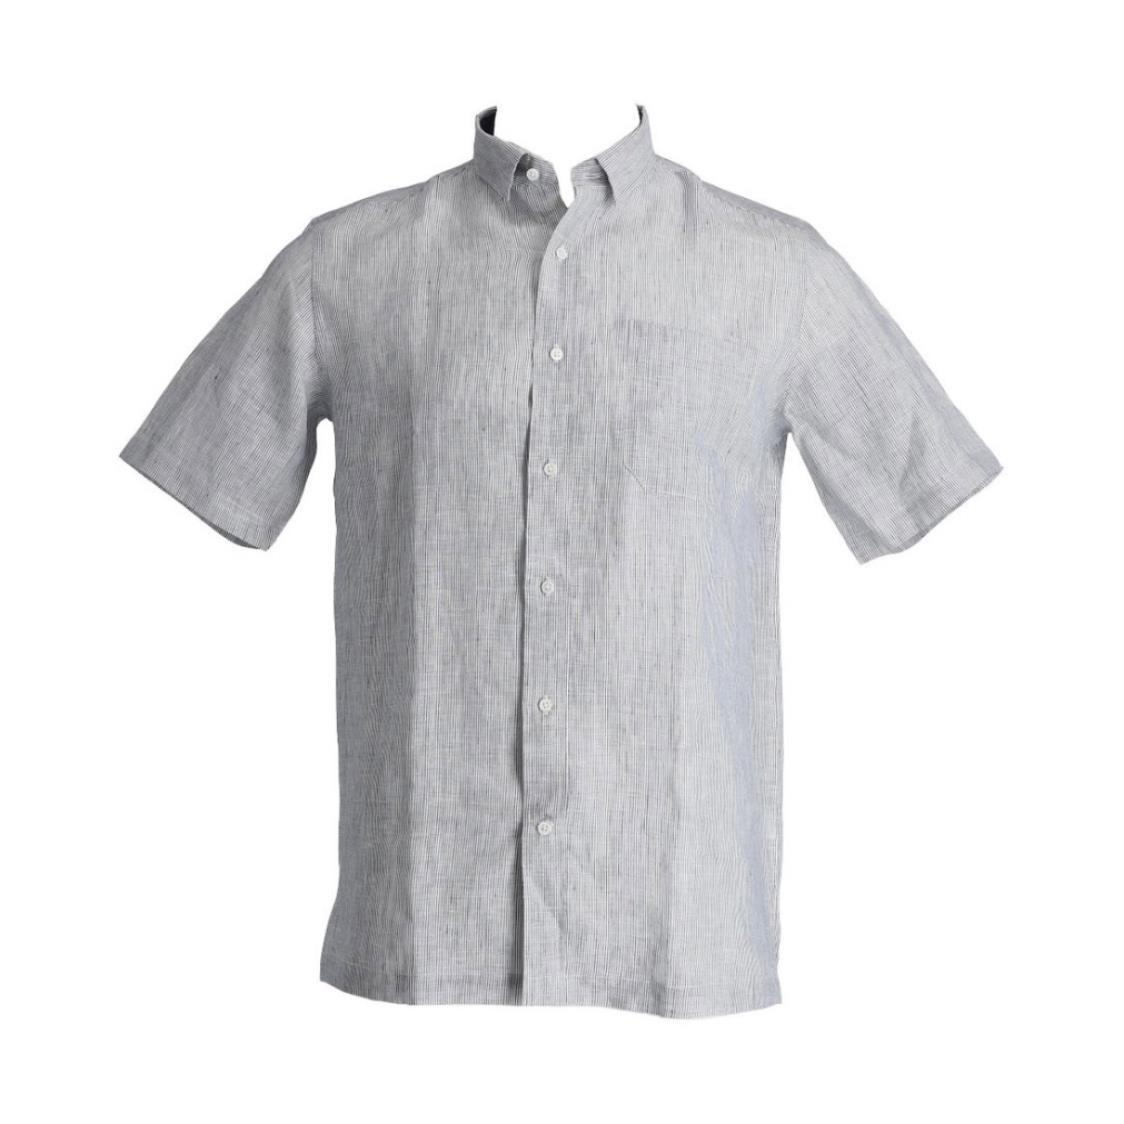 Mens 100 European Linen Short Sleeve Tailored Fit Shirt With Contrast Collar Lining Navy Stripes